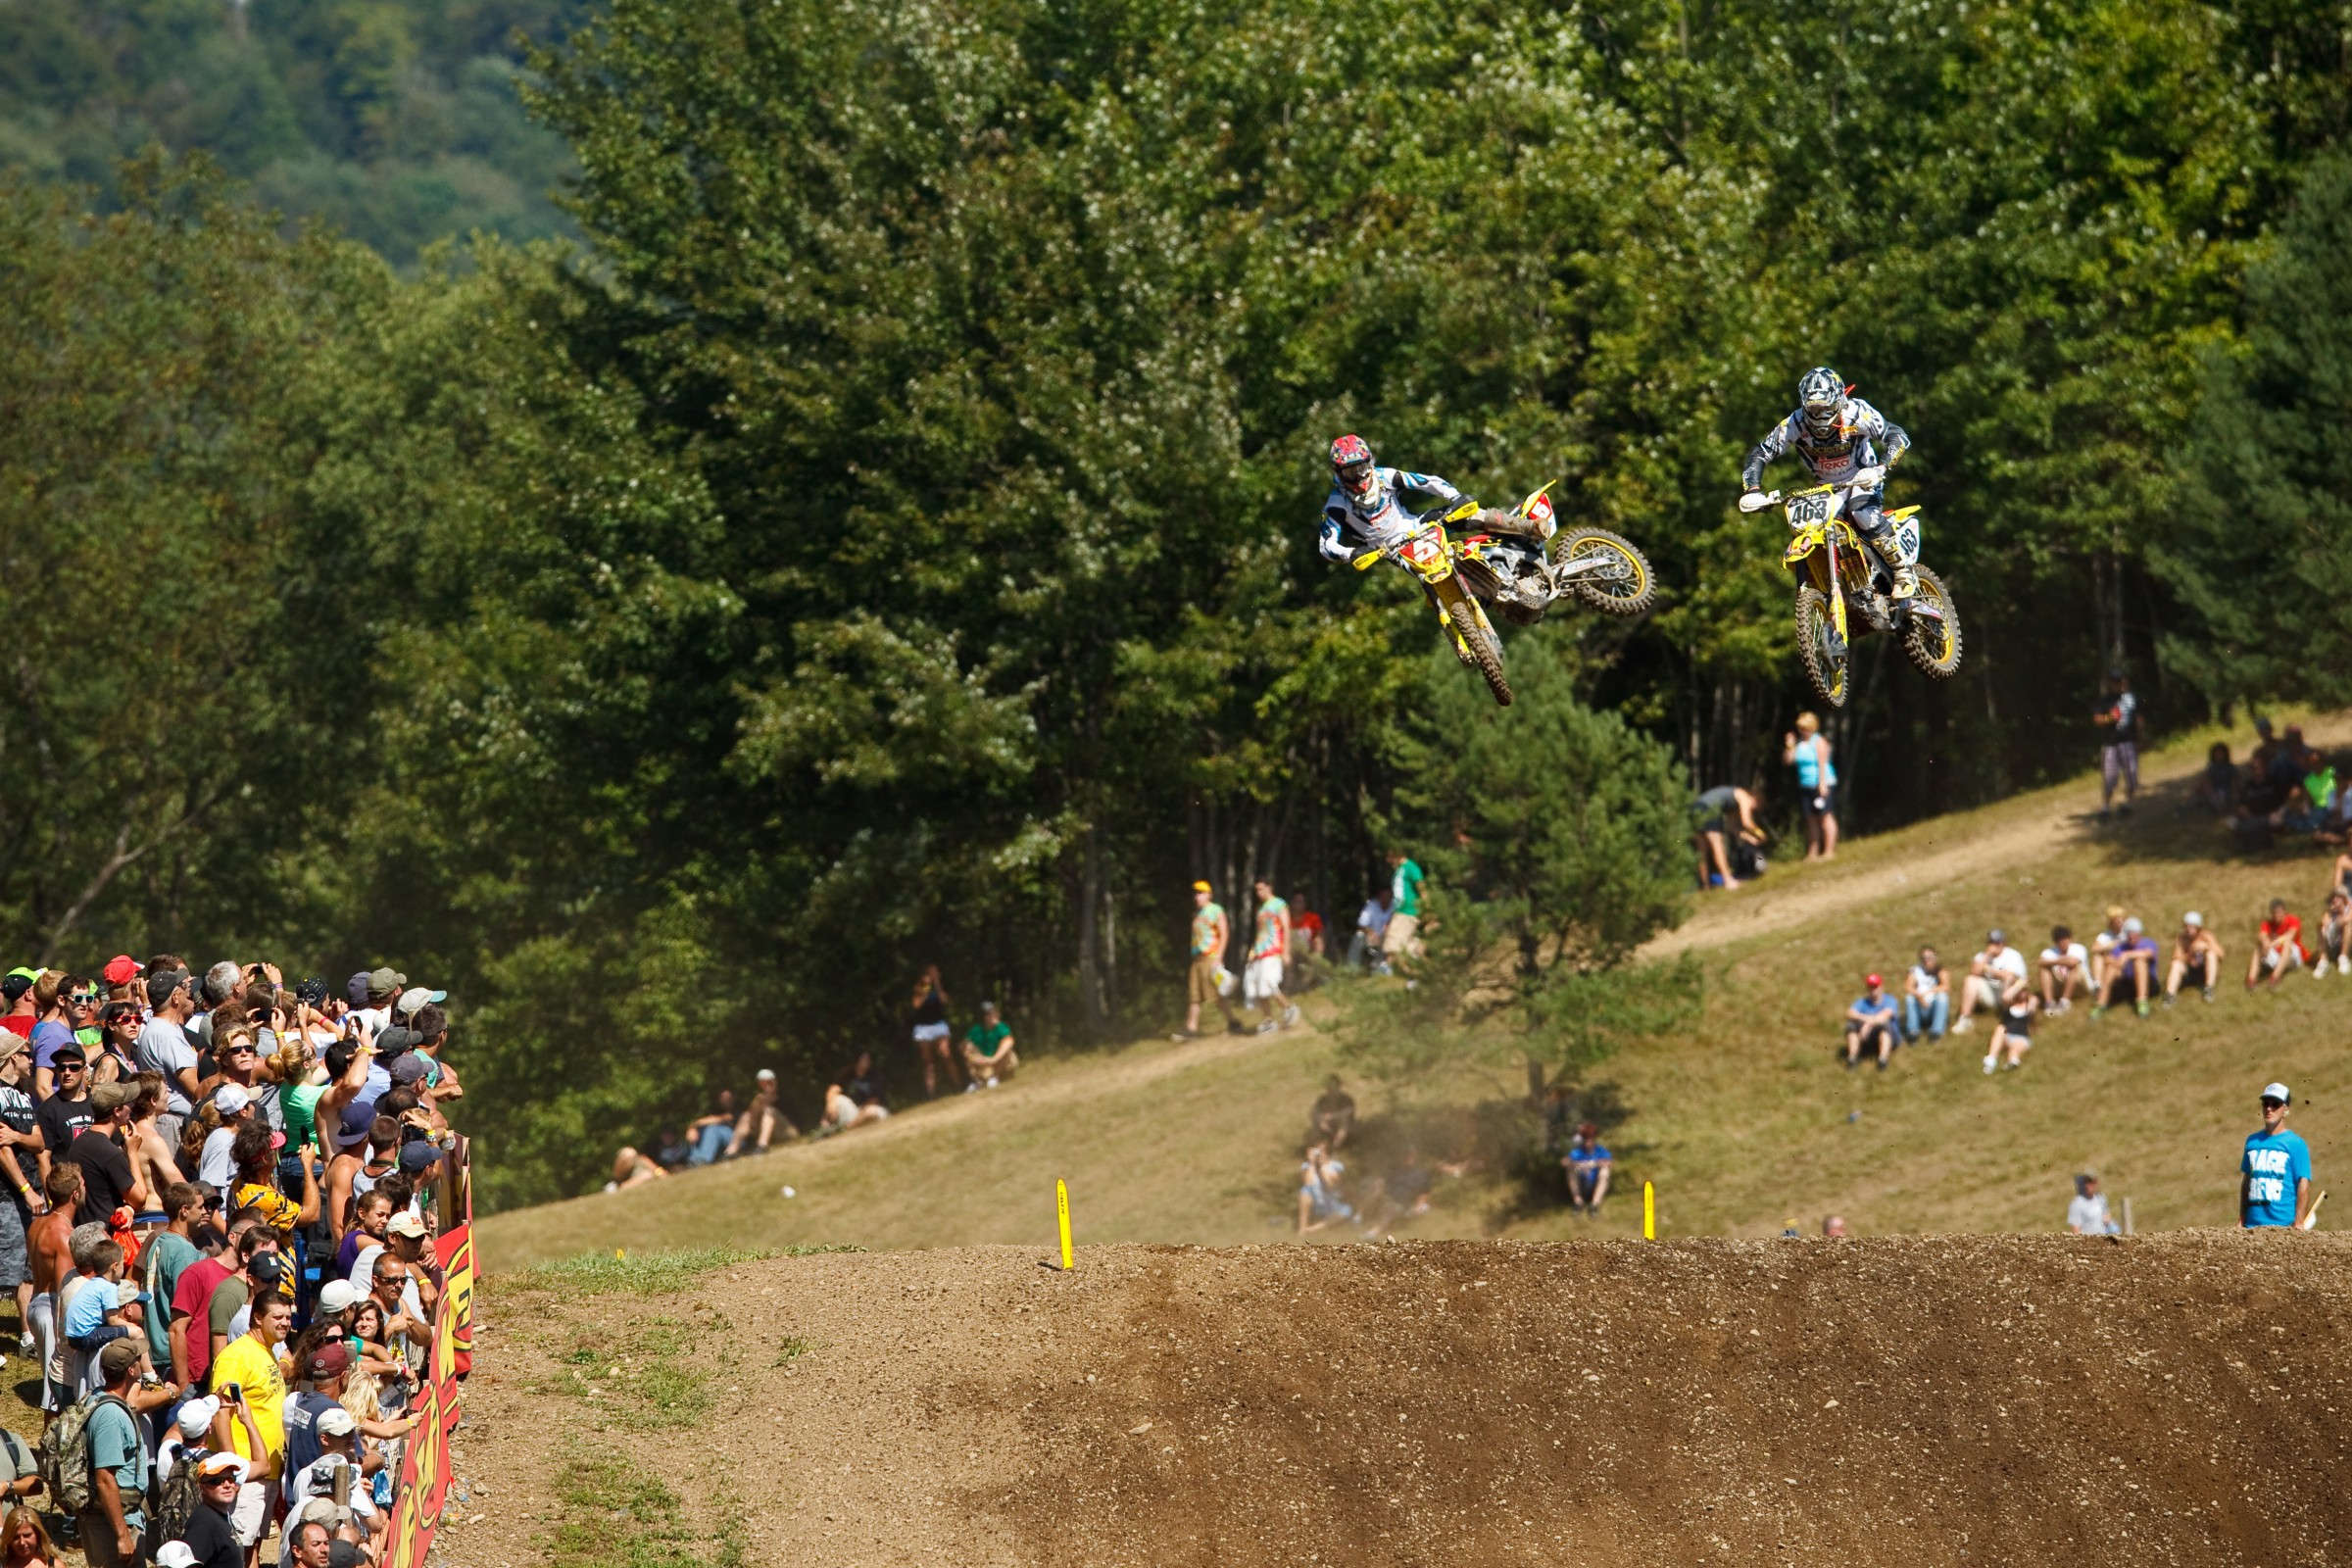 Desalle led for four laps in the second moto at Unadilla in 2010.